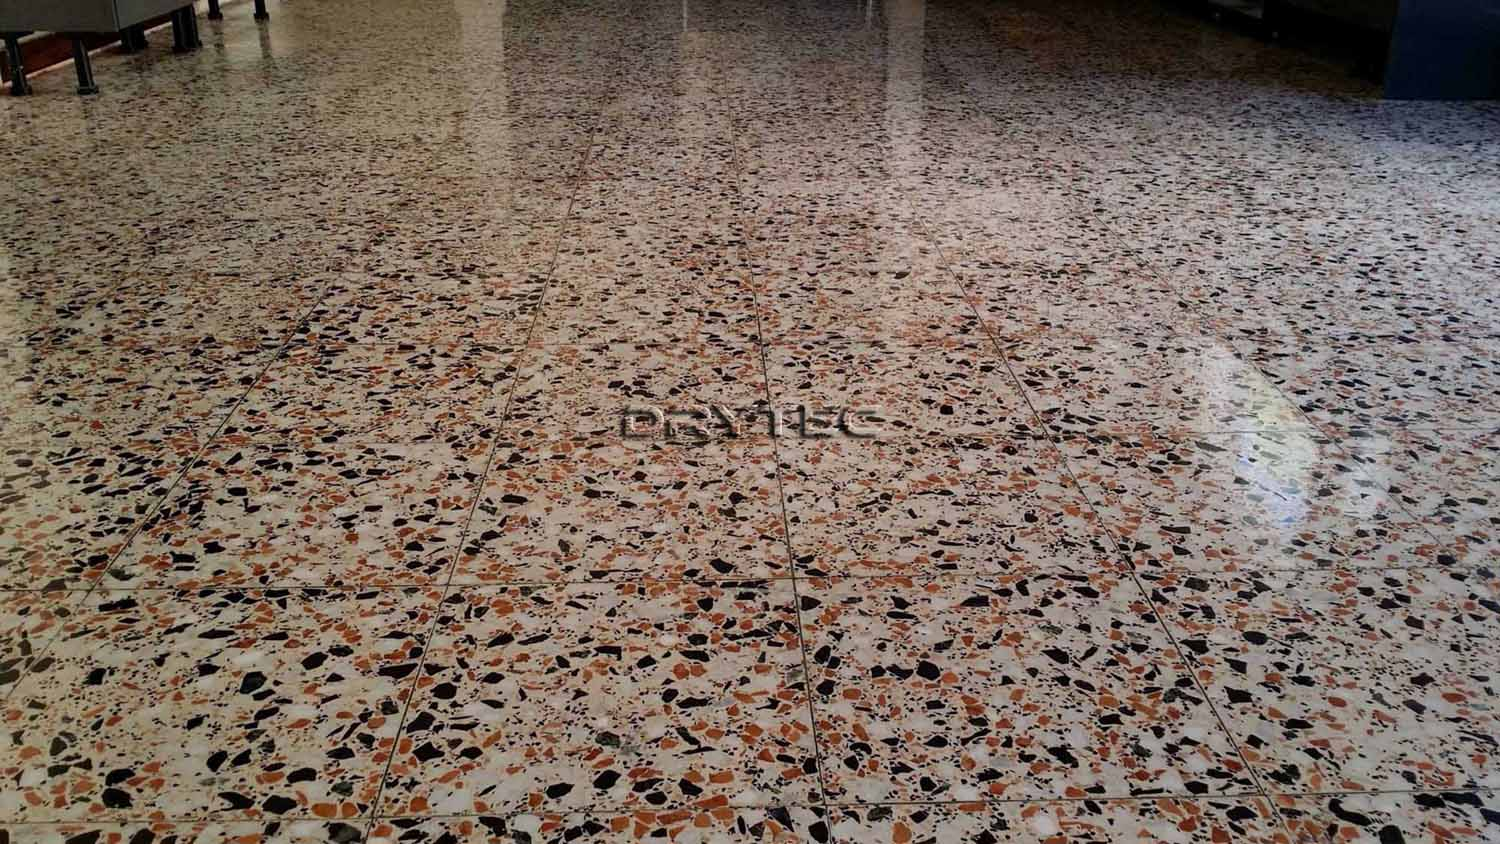 Terrazzo Floor Tiles Restoration-Grinding-Honing-Polishing-Cleaning and Sealing Service in Perth WA